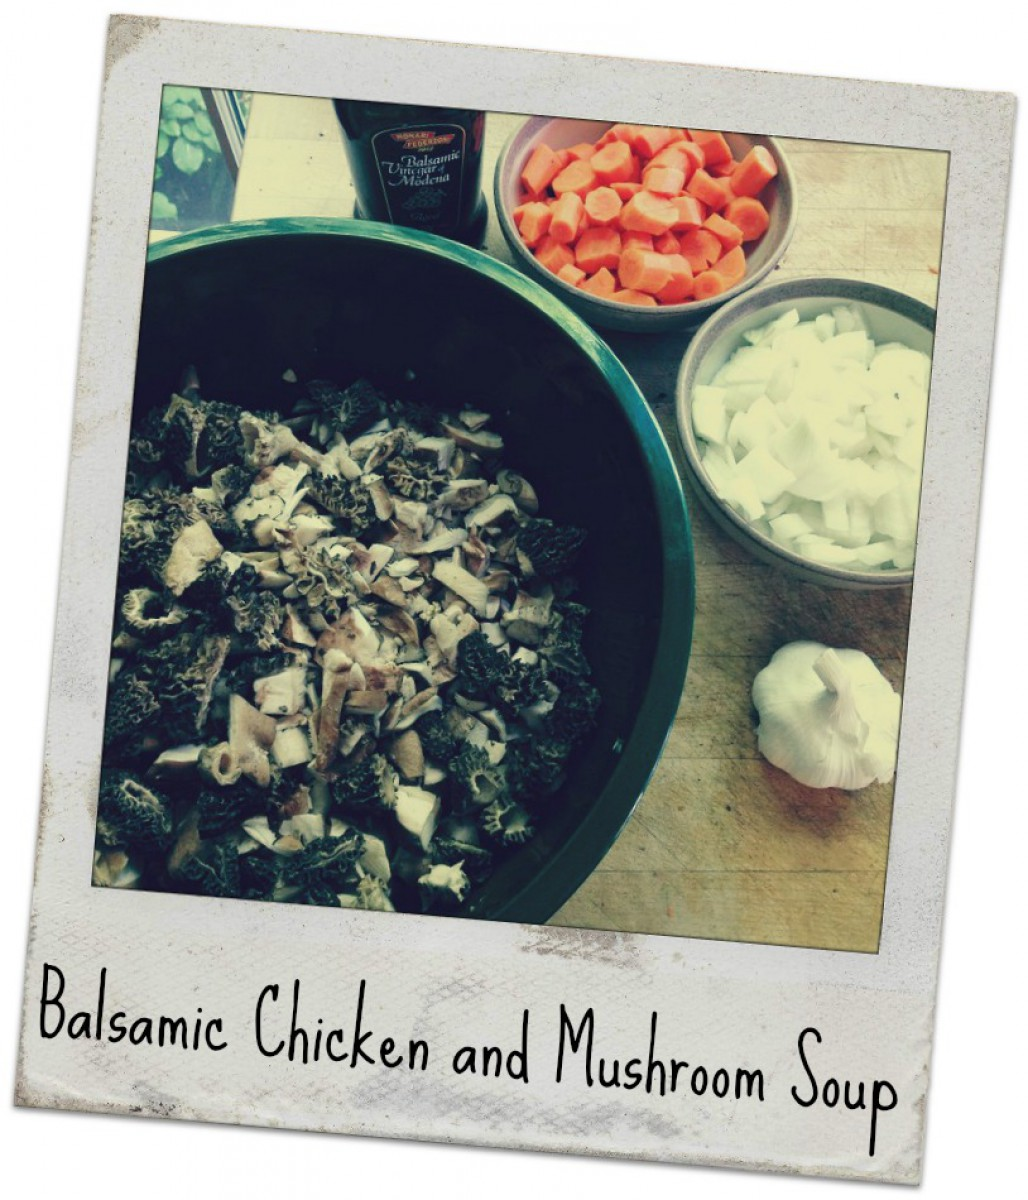 Balsamic Chicken and Mushroom Soup